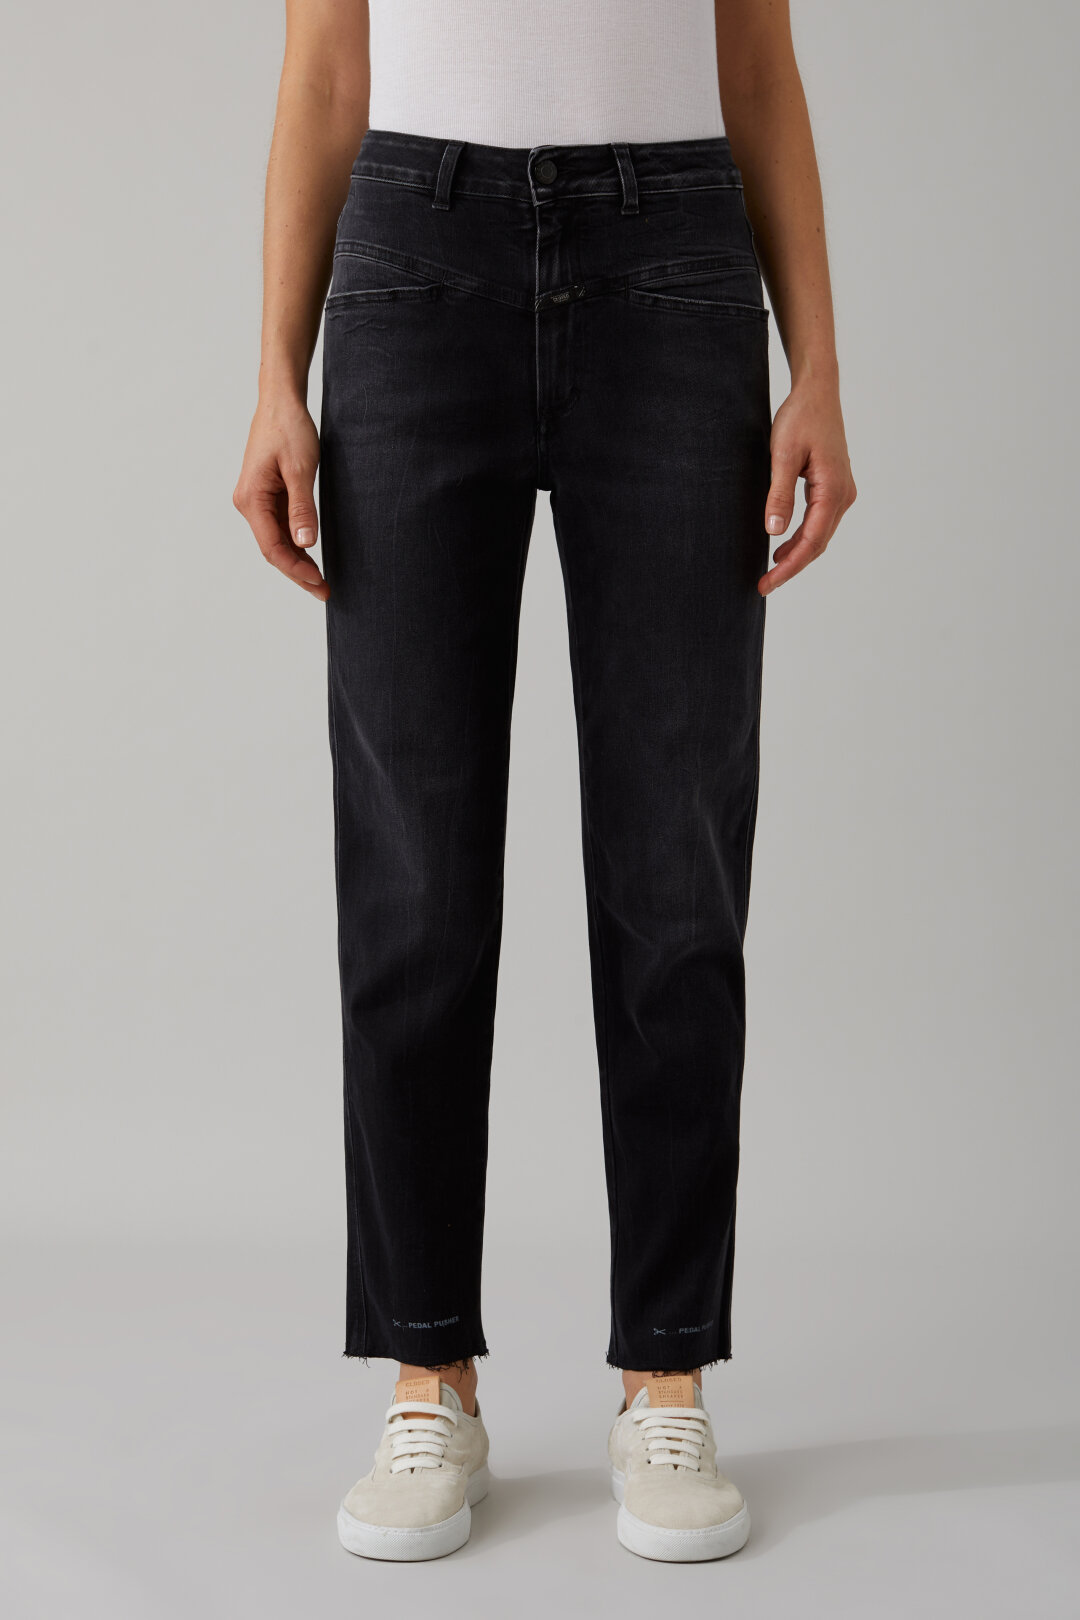 Pedal Pusher Black Stretch Denim